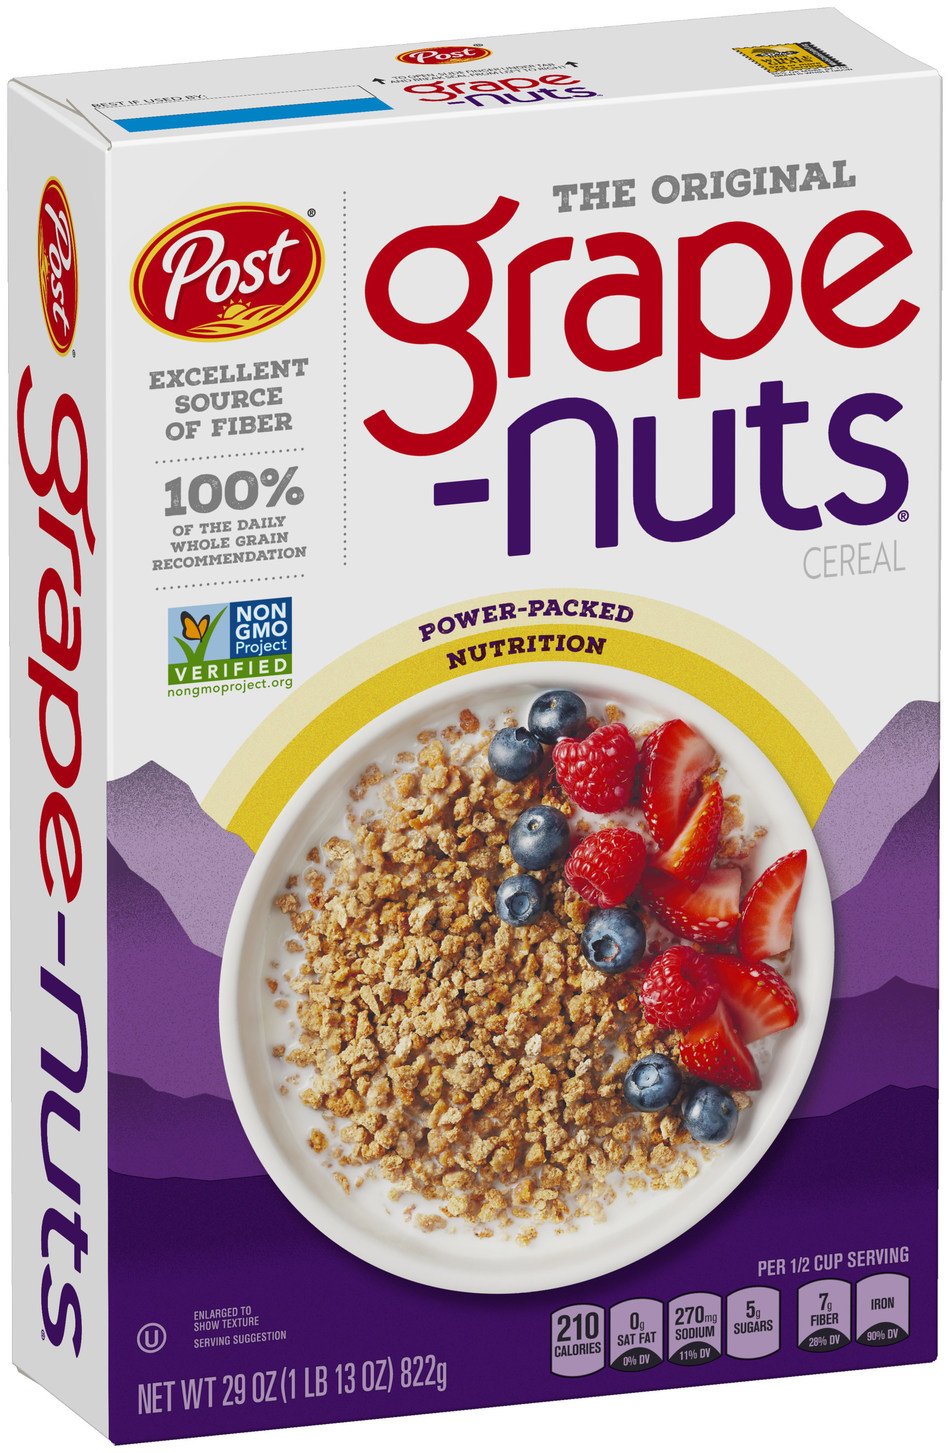 Grape-Nuts cereal